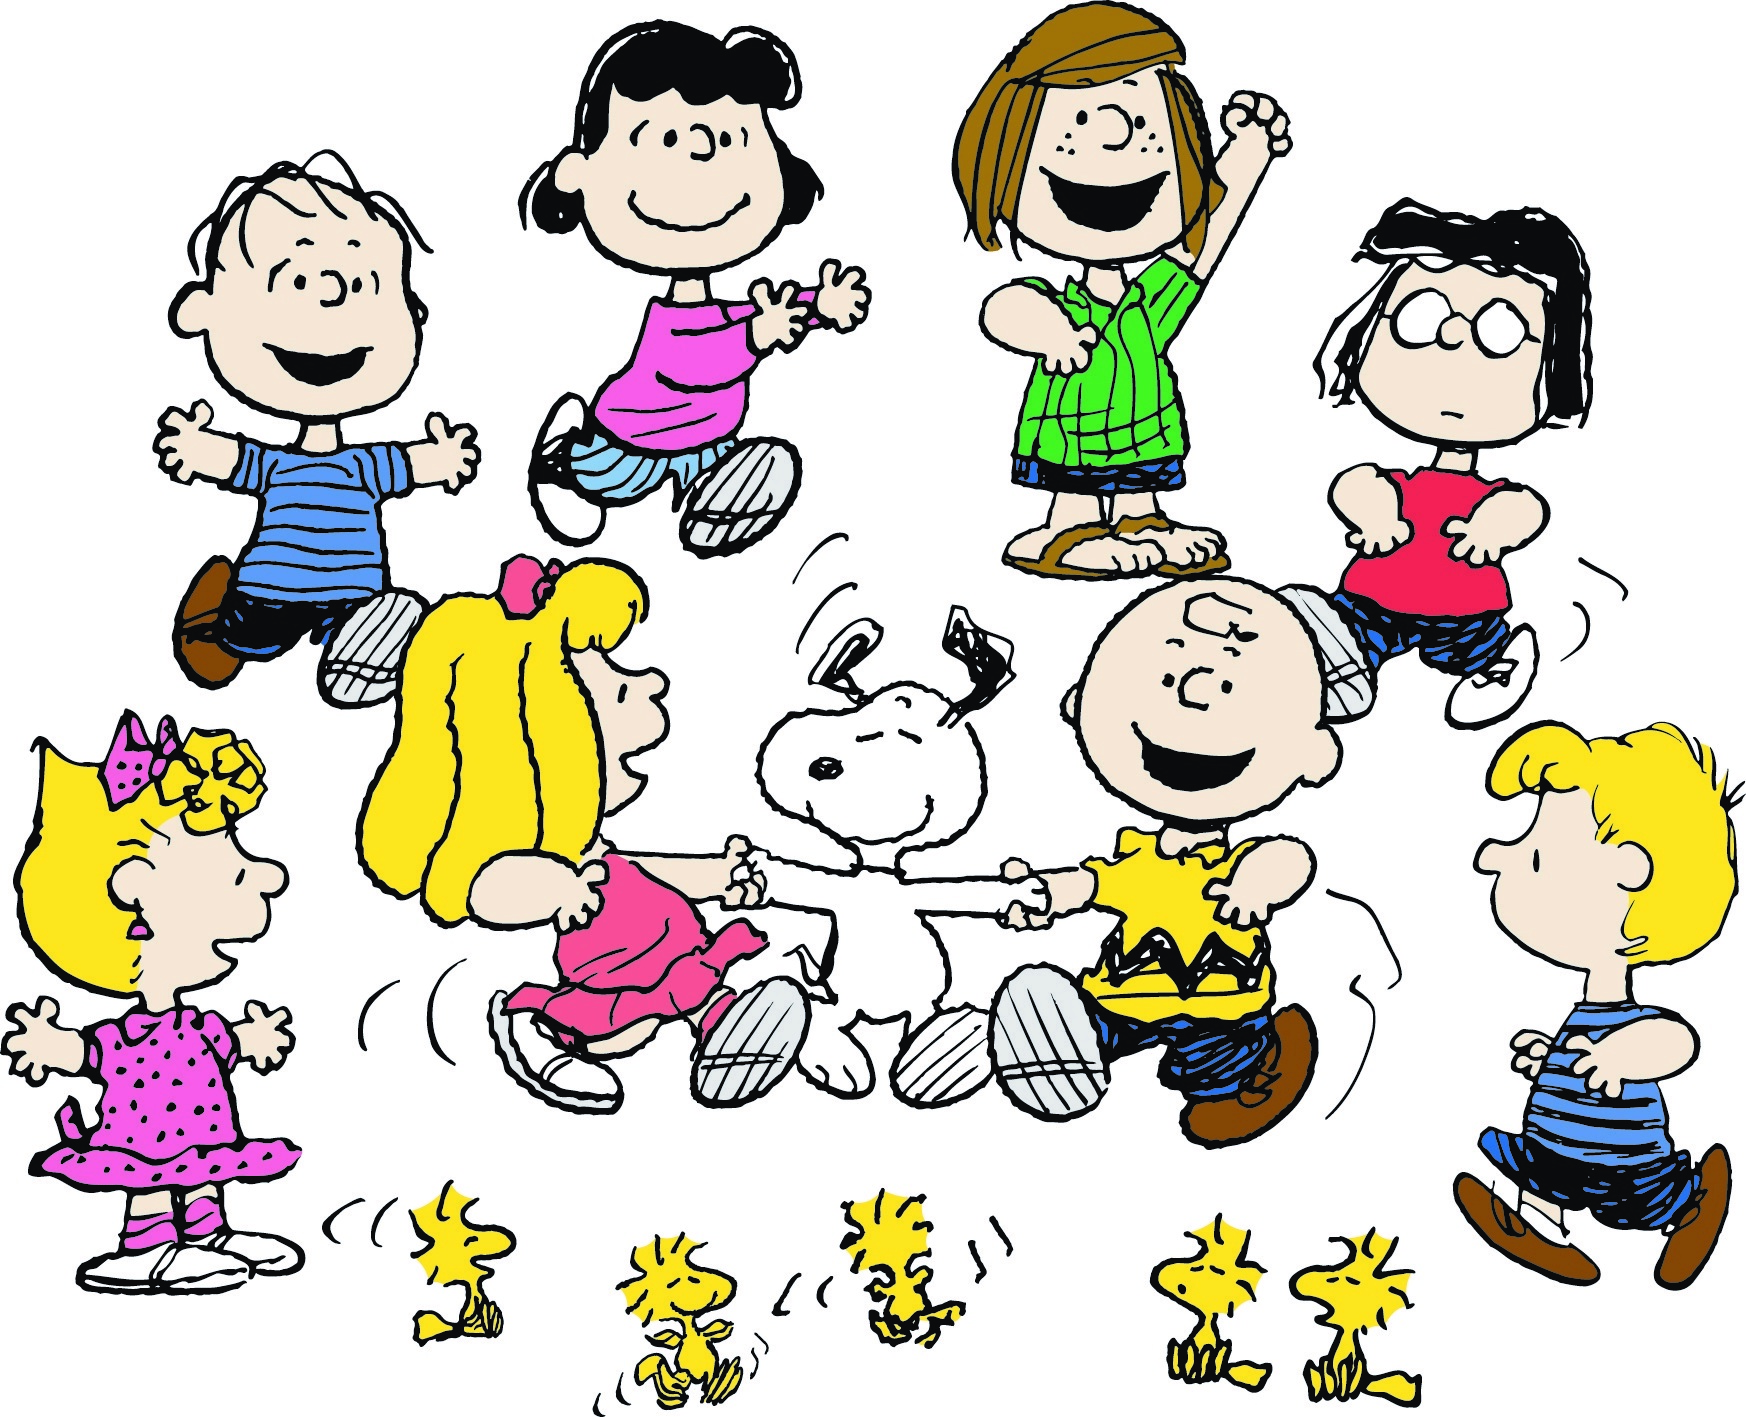 Happy birthday peanuts heiter bis gl cklich - Charlie brown bilder ...